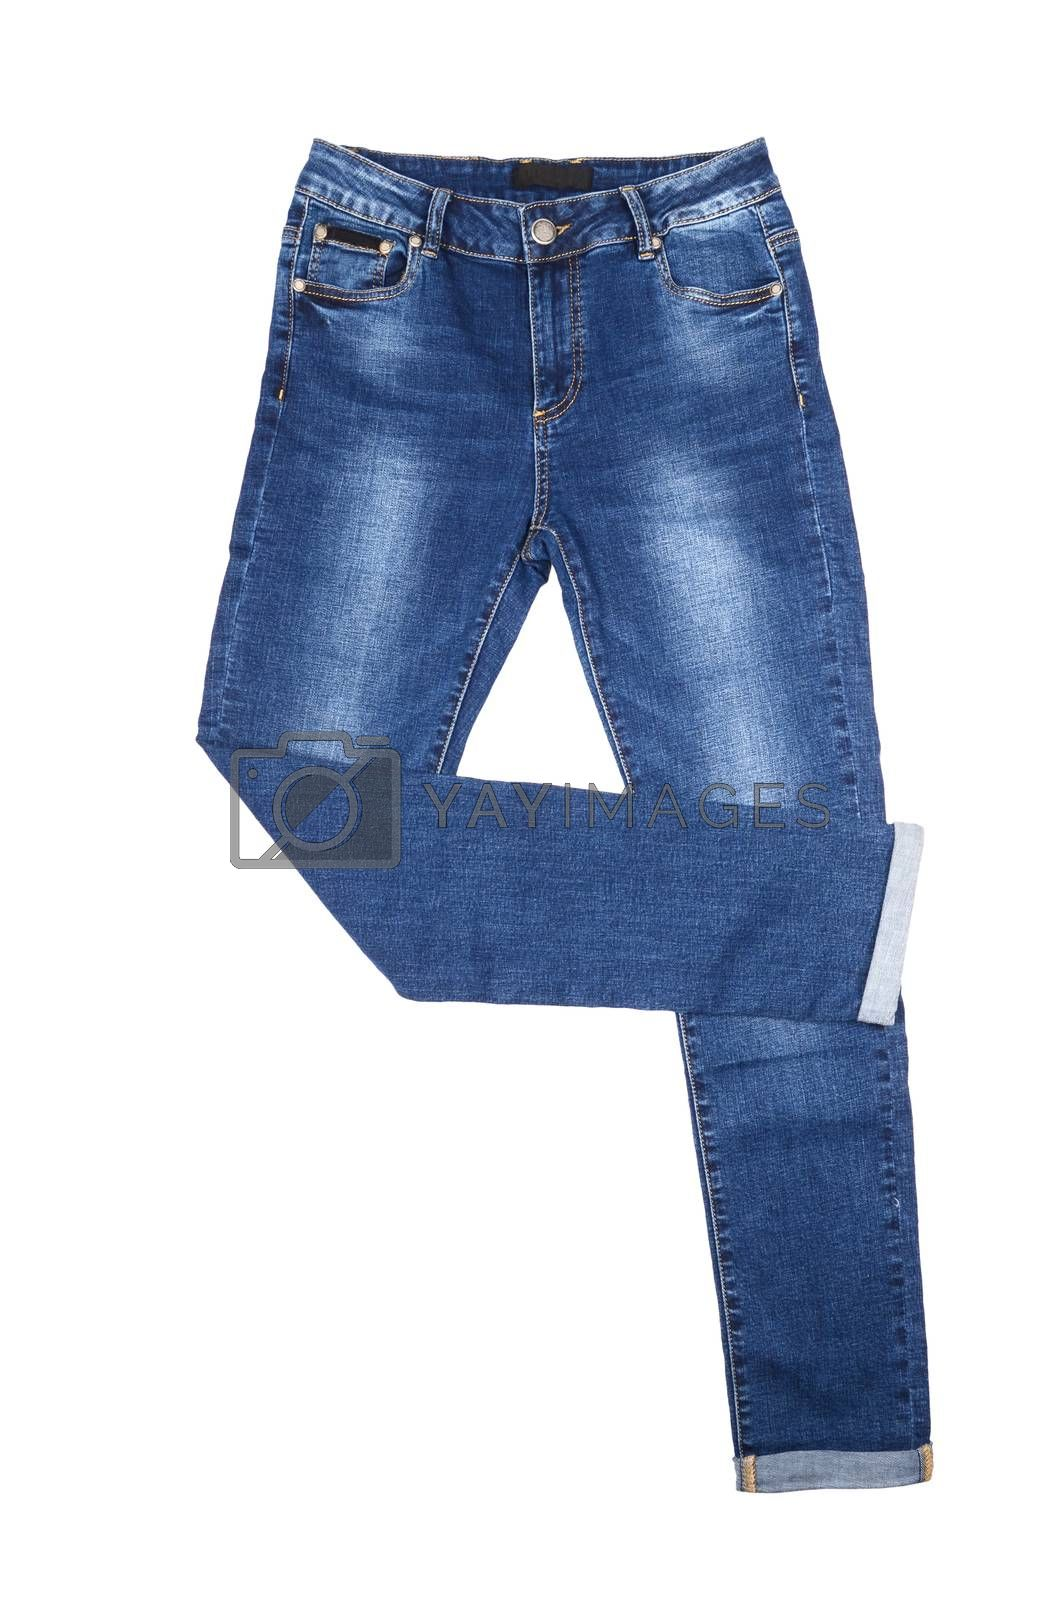 Blue female jeans isolated on white background